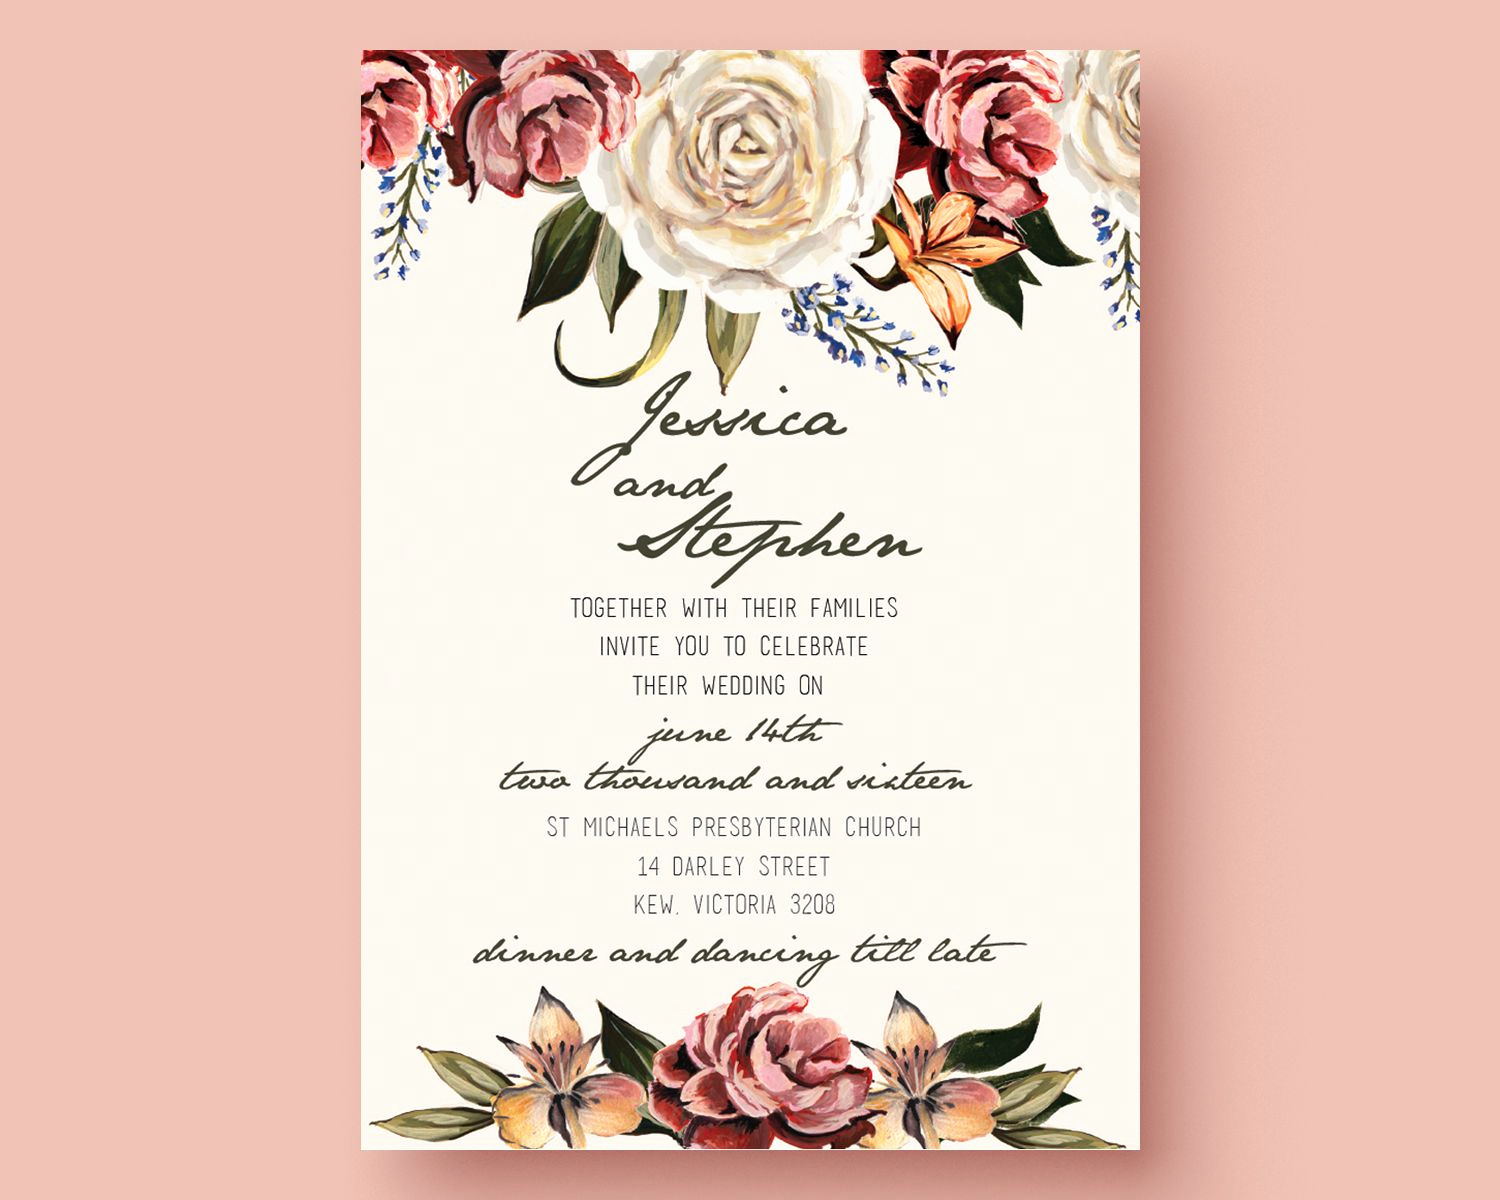 Wedding Invitation Templates Downloads Beautiful Get the Template Free This is An Adobe